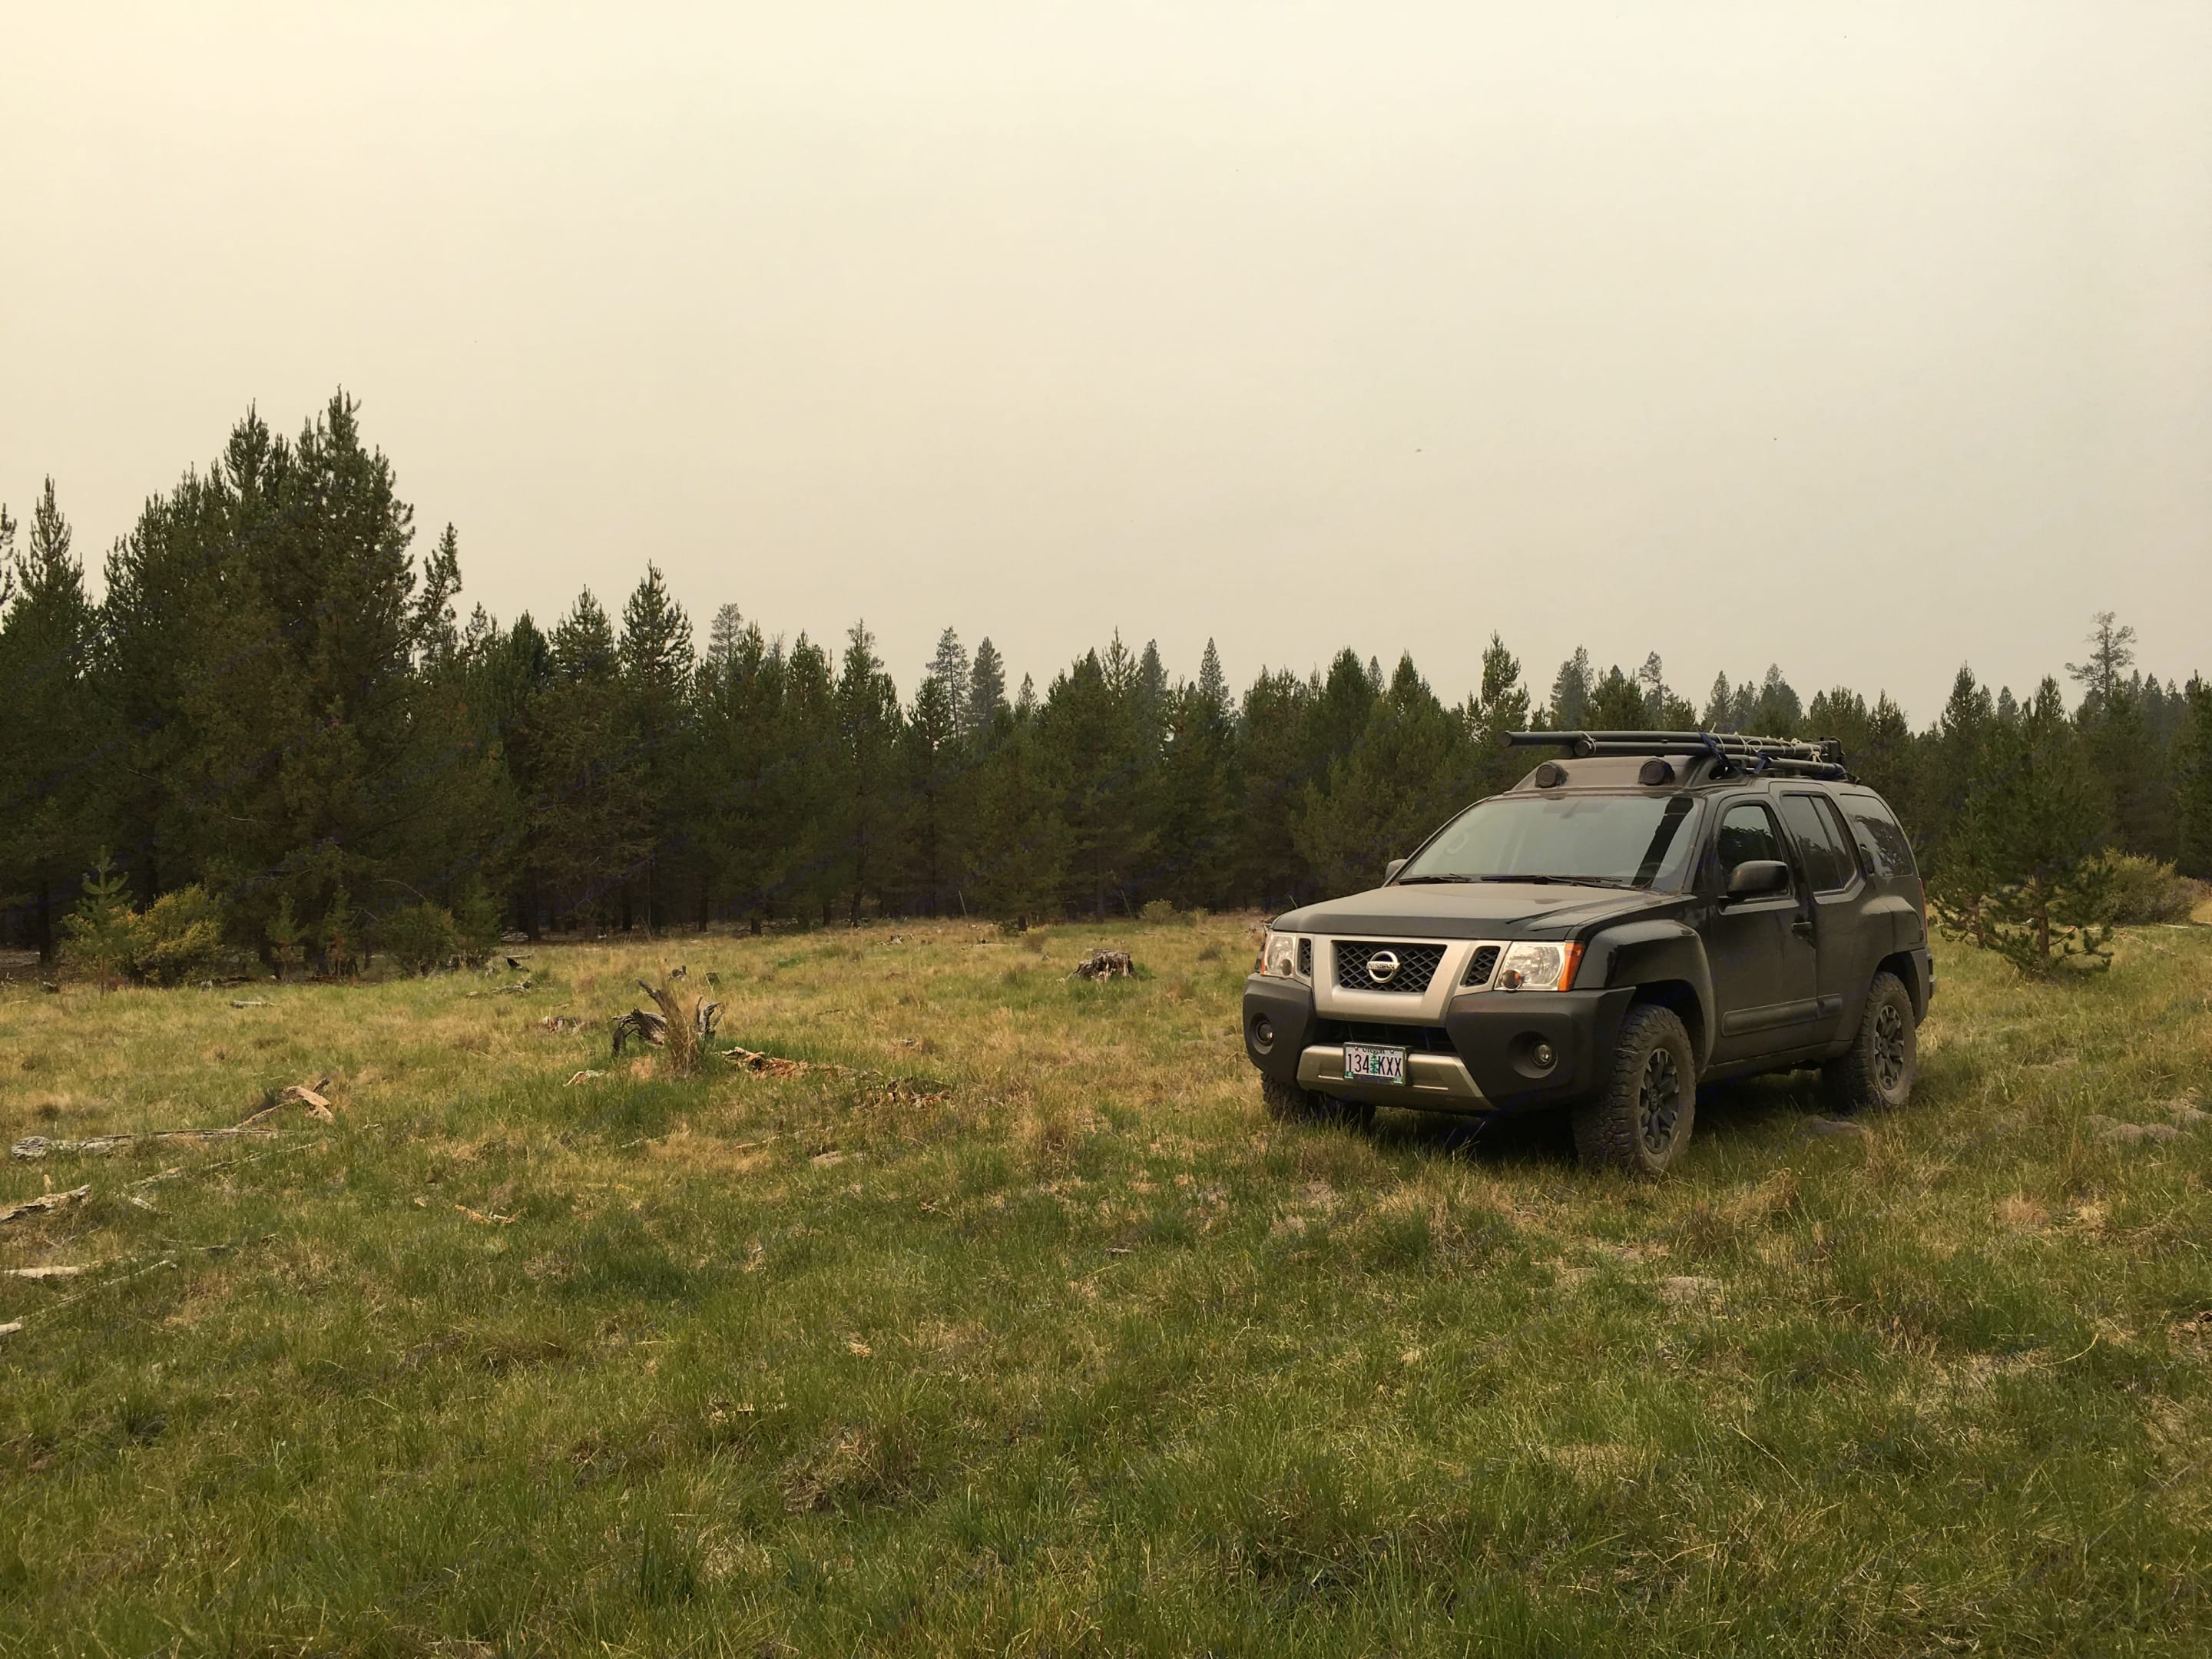 Getting out into the backcountry is what this rig is built to do. Whether it's getting into some isolated fly fishing spots or just trying to get away from it all. The Xterra Pro-4x will easily do both.. Nissan Xterra Pro-4X 2014